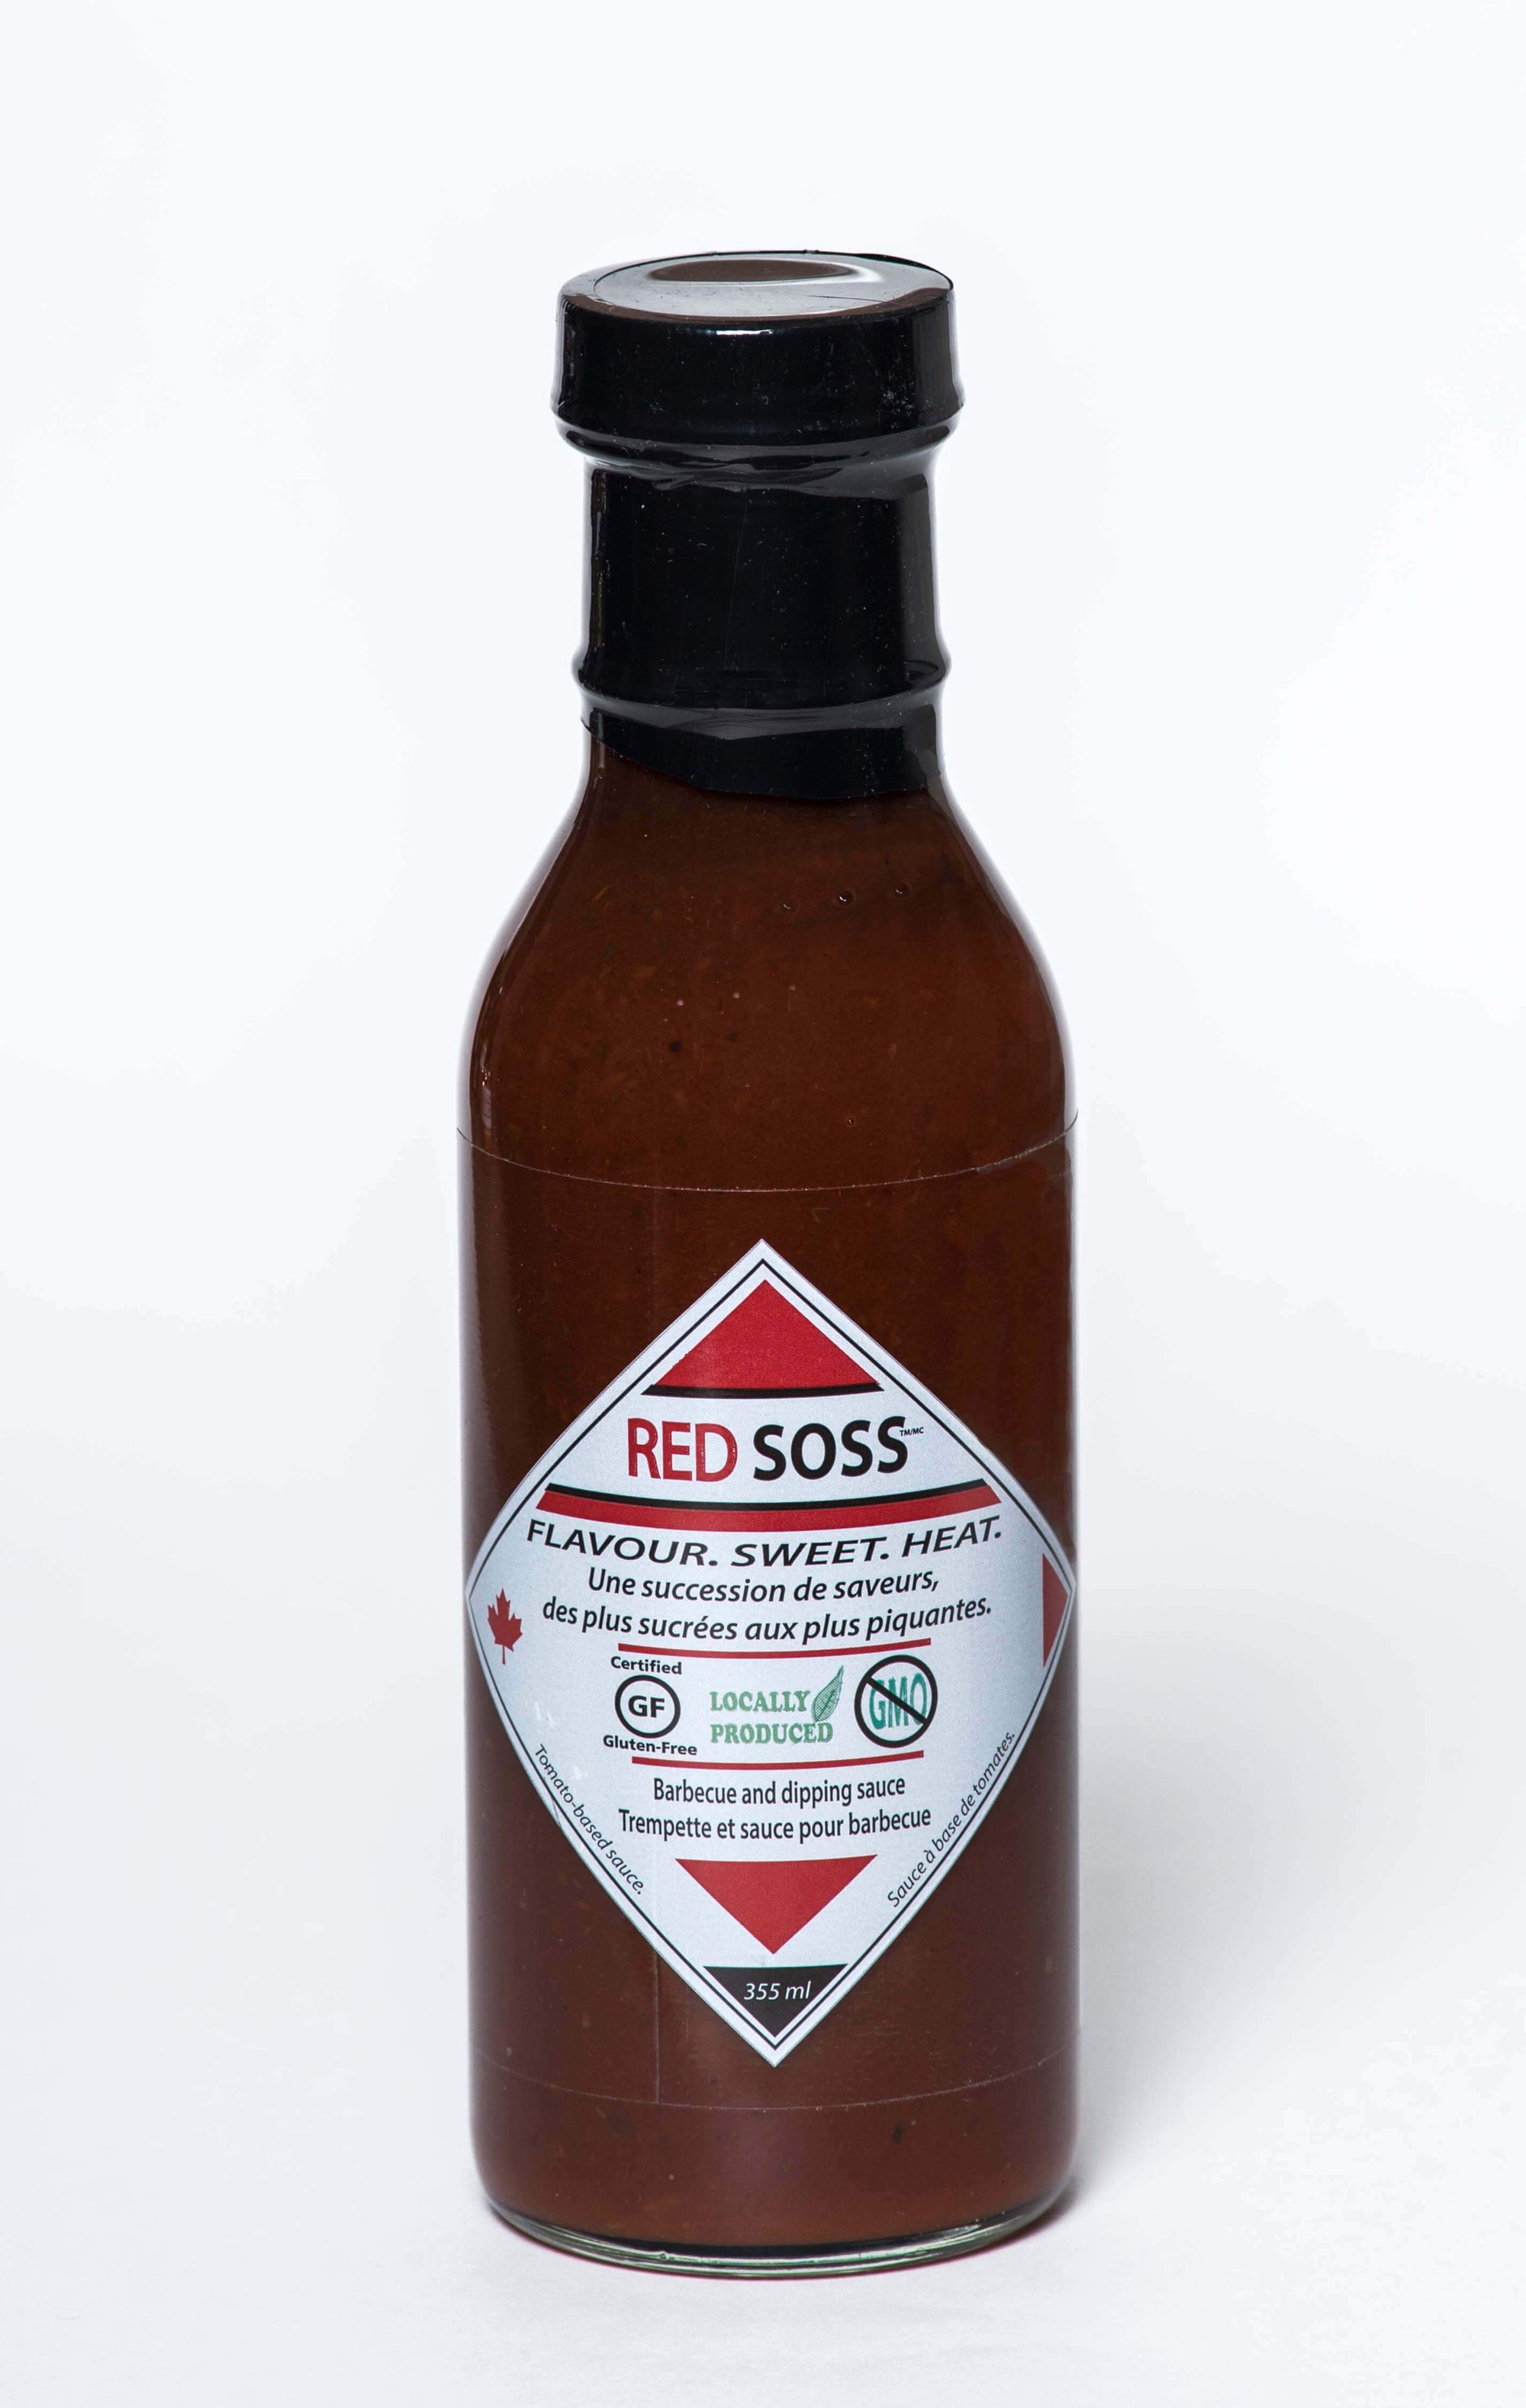 Food & Drink - Soss - Red Soss, 355ml